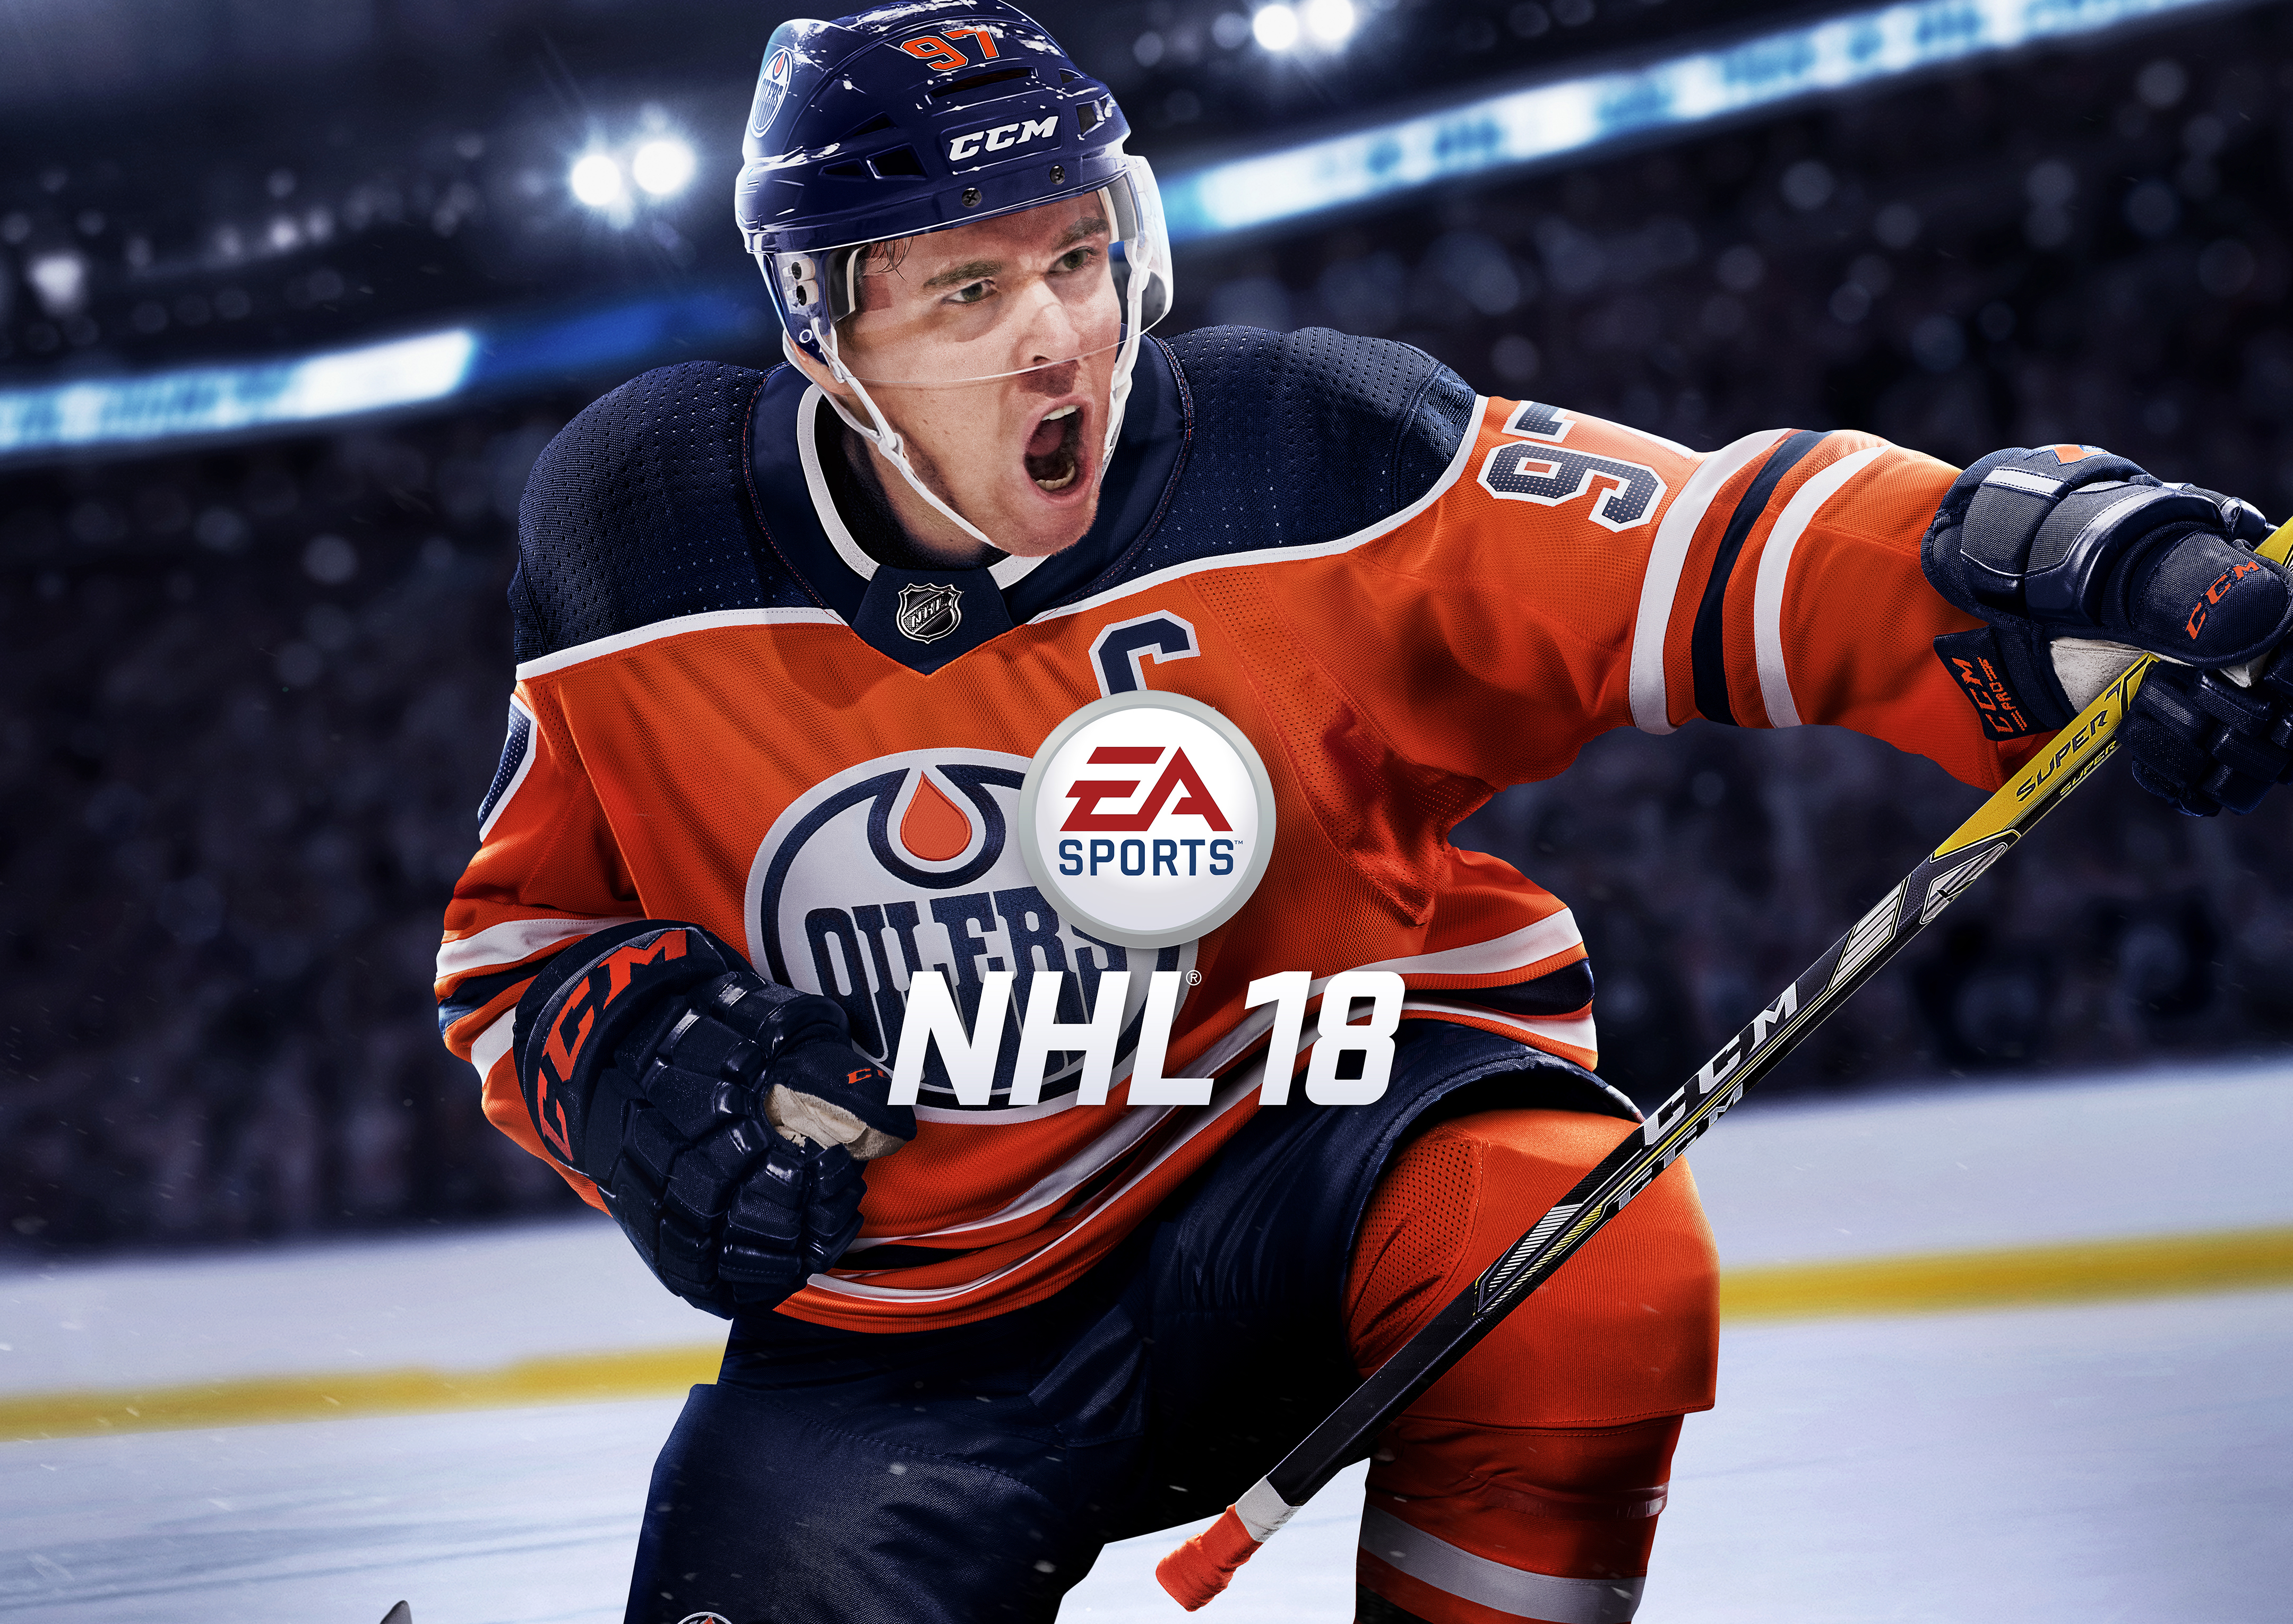 EA SPORTS NHL 18 Reveals Edmonton Oilers Superstar Connor McDavid as ... 0d9503ff6